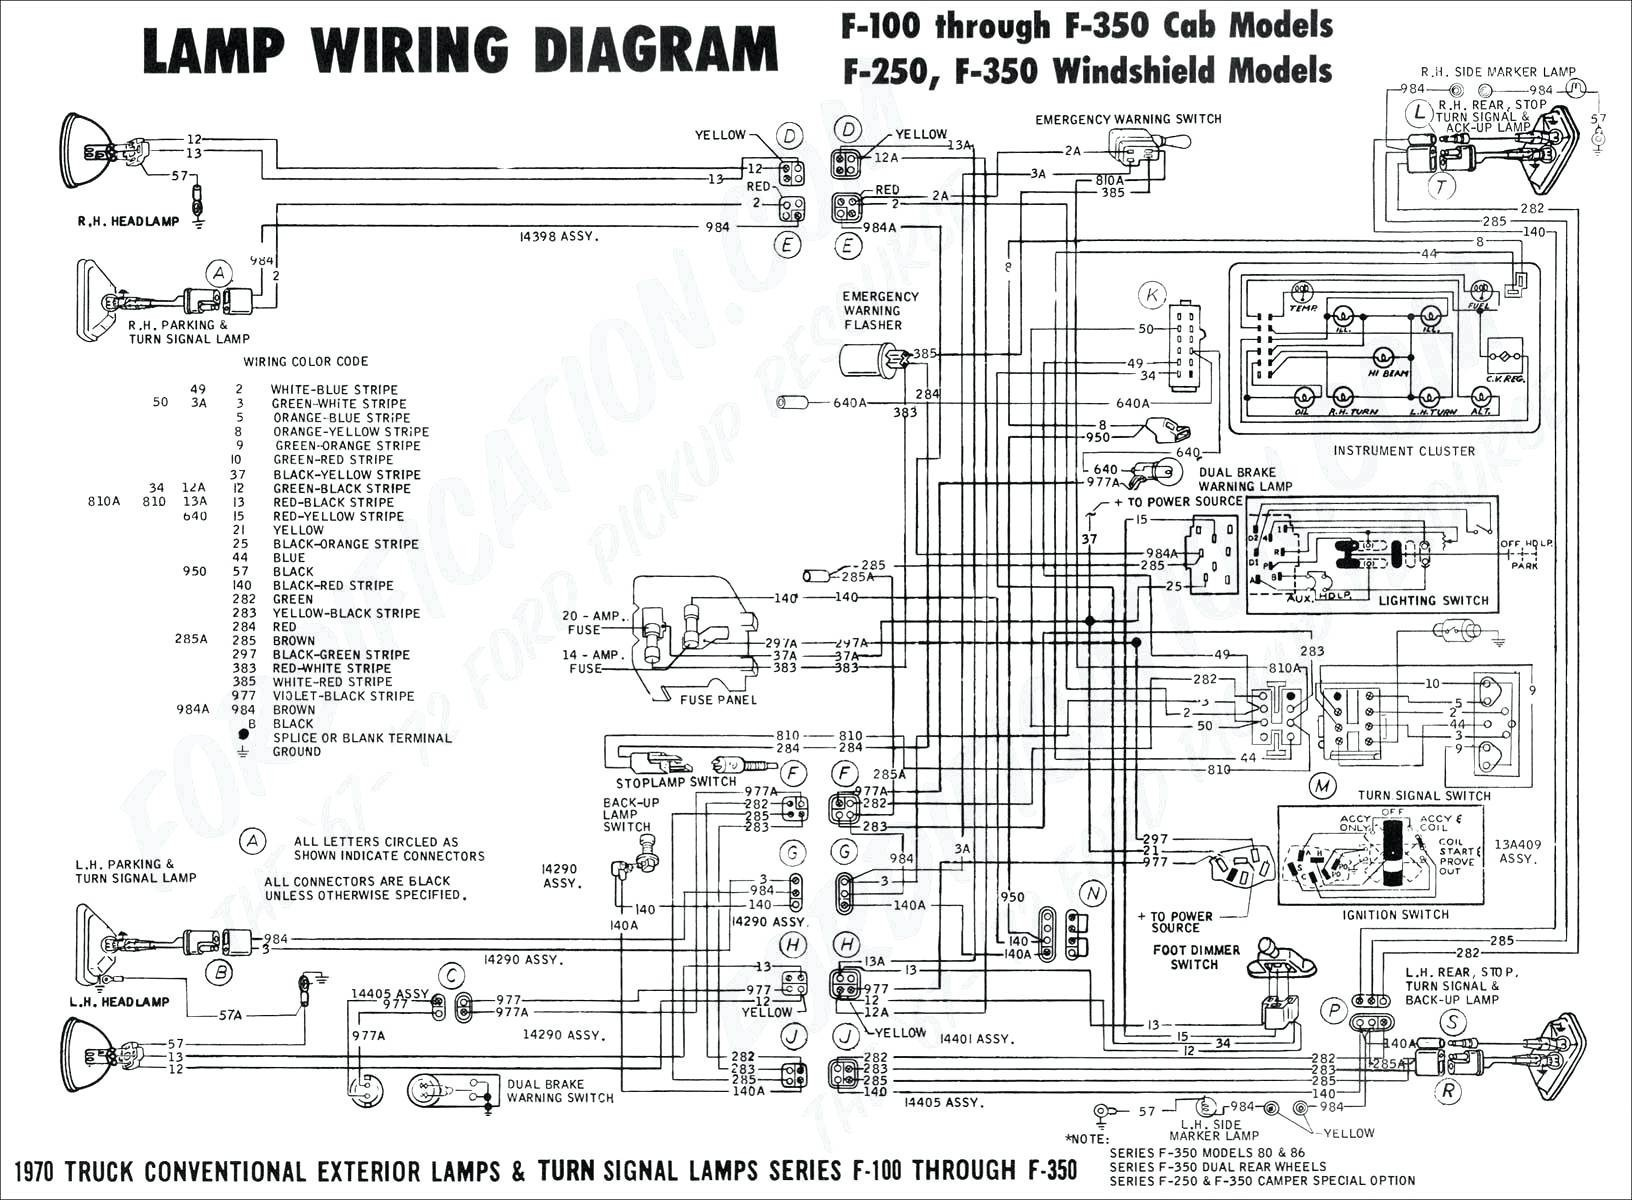 1993 F150 Alternator Wiring Diagram | Wiring Diagram  Ford F Alternator Wiring Diagram on 1973 ford bronco wiring diagram, 1984 ford f-150 wiring diagram, 1977 ford f-150 wiring diagram, 78 ford wiring diagram, 1989 ford f-150 wiring diagram, 1990 ford f-150 wiring diagram, 1977 ford bronco wiring diagram, 1980 ford truck wiring diagram, 1985 ford f-150 wiring diagram, 1977 ford f100 wiring diagram, 1986 ford f-150 wiring diagram, 1976 ford bronco wiring diagram, 1991 ford f-150 wiring diagram, 1988 ford f-150 wiring diagram, 1968 ford bronco wiring diagram, ford truck engine wiring diagram, 1993 ford f-150 wiring diagram, 1987 ford f-150 wiring diagram, 1992 ford f-150 wiring diagram, 1975 ford bronco wiring diagram,